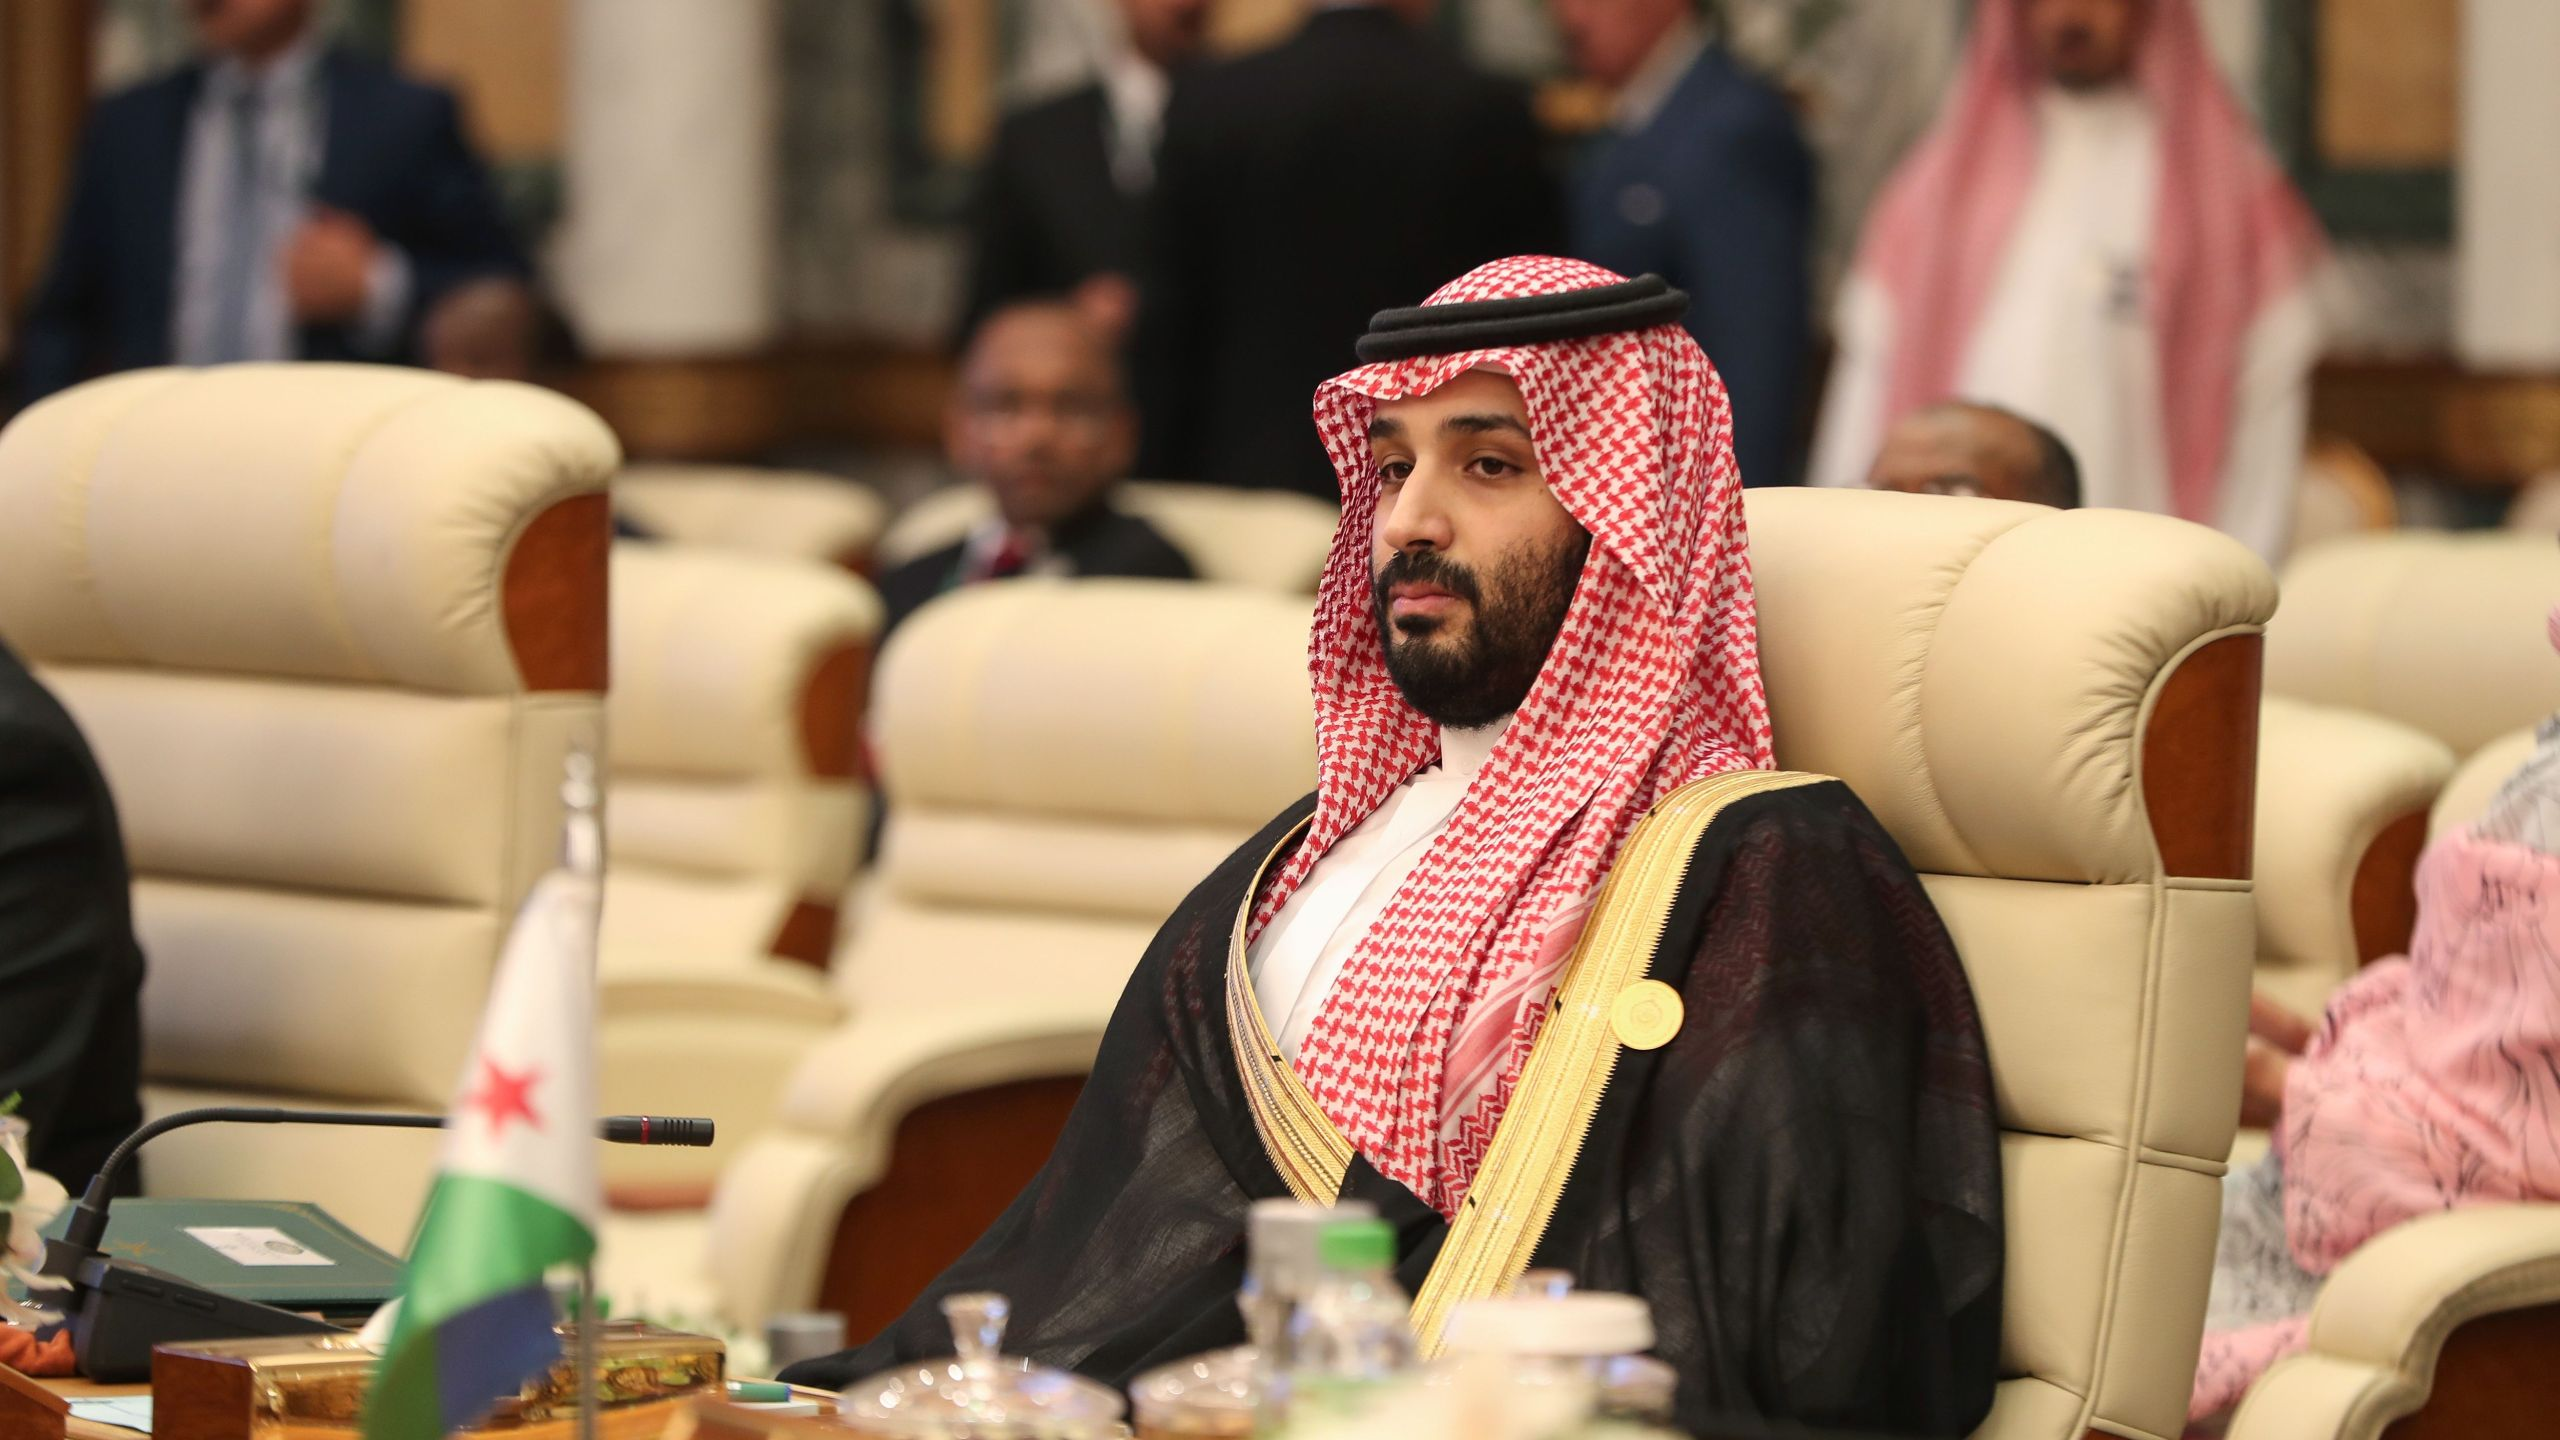 Saudi Crown Prince Mohammed bin Salman attends the extraordinary Arab summit held at al-Safa Royal Palace in Mecca on May 31, 2019. (Credit: BANDAR ALDANDANI/AFP/Getty Images)